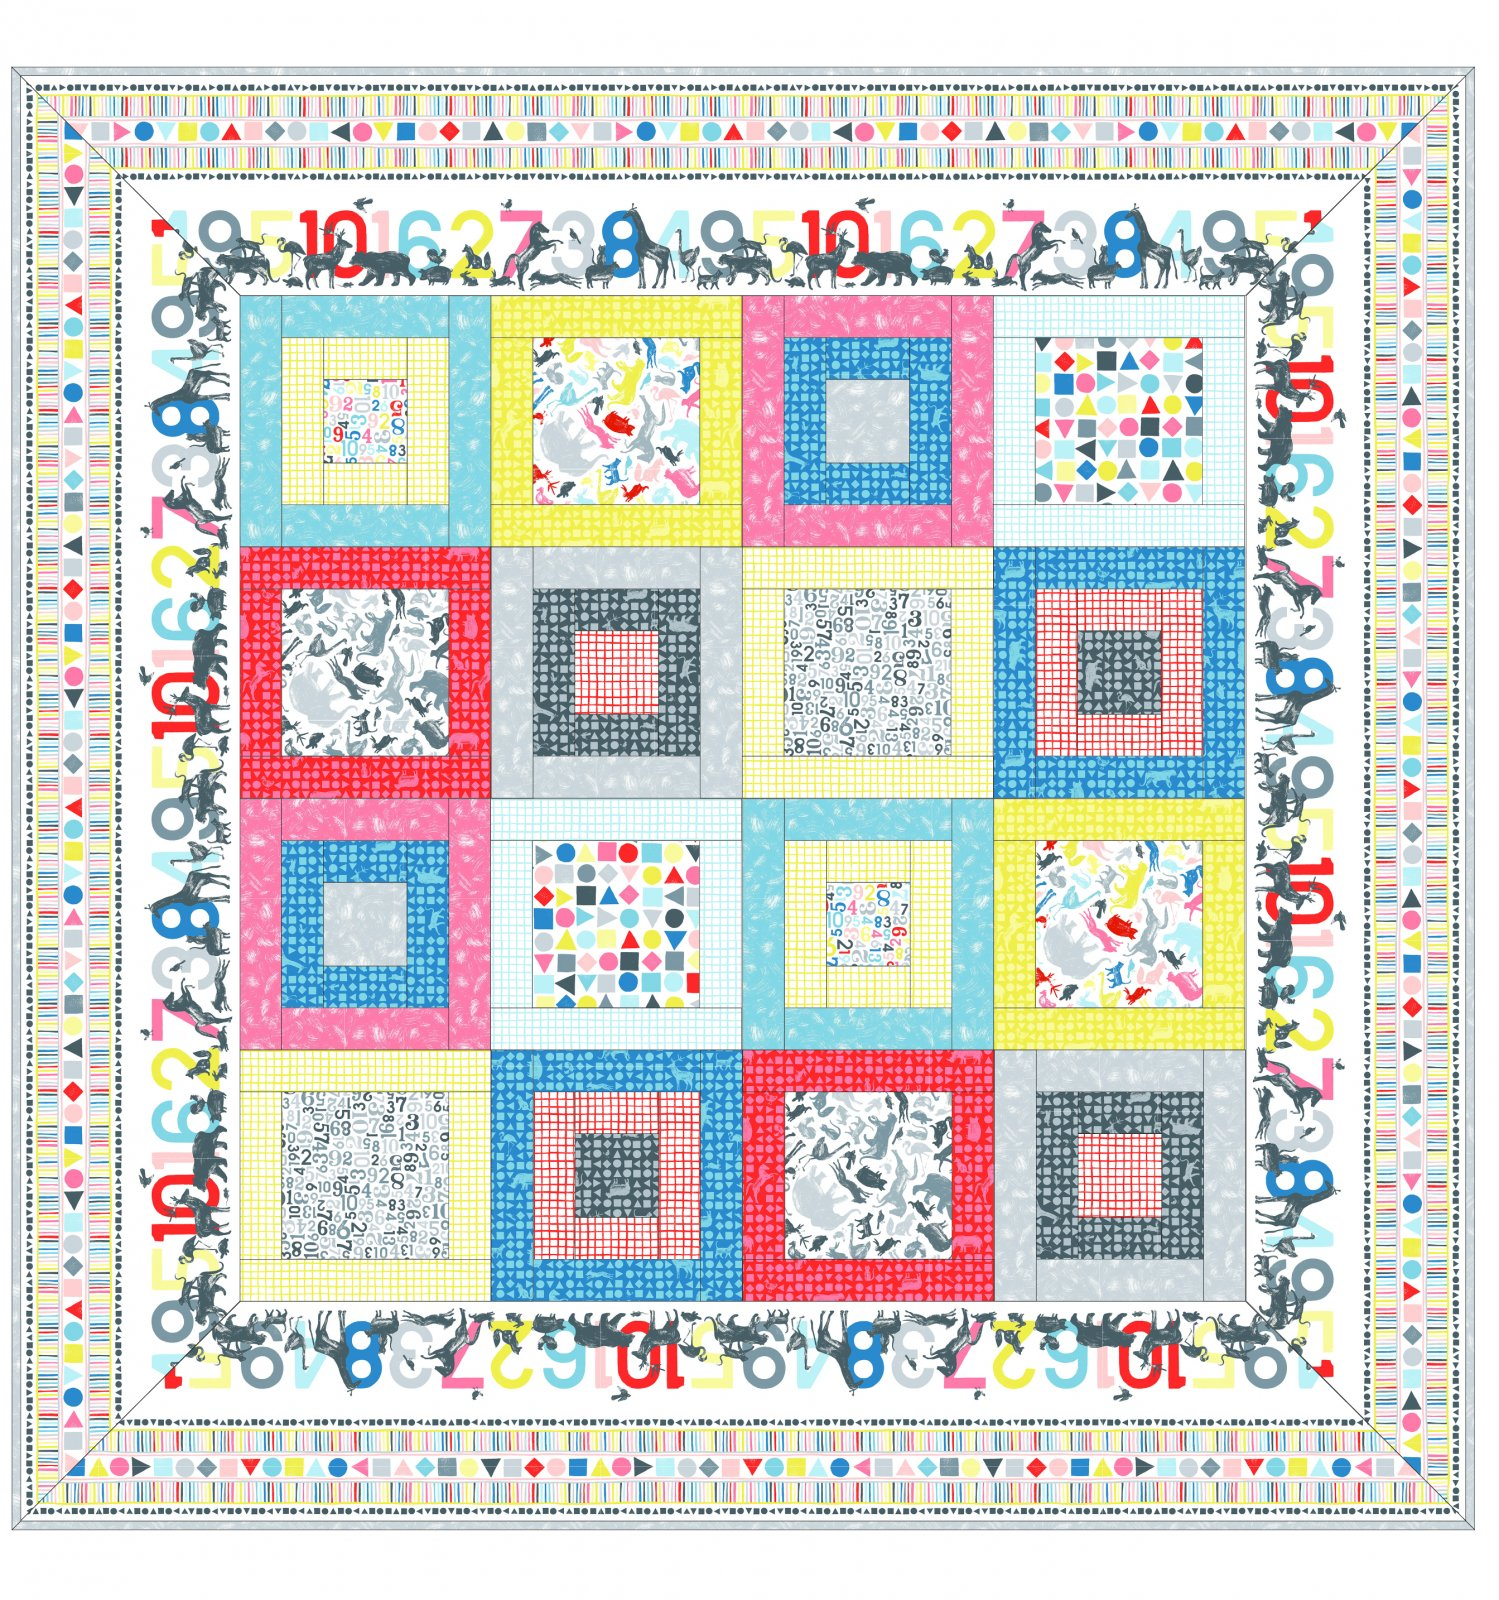 EESC-KITMASCAC - CAN ANIMALS COUNT? QUILT KIT 70 x 70 - ARRIVING IN OCTOBER 2021